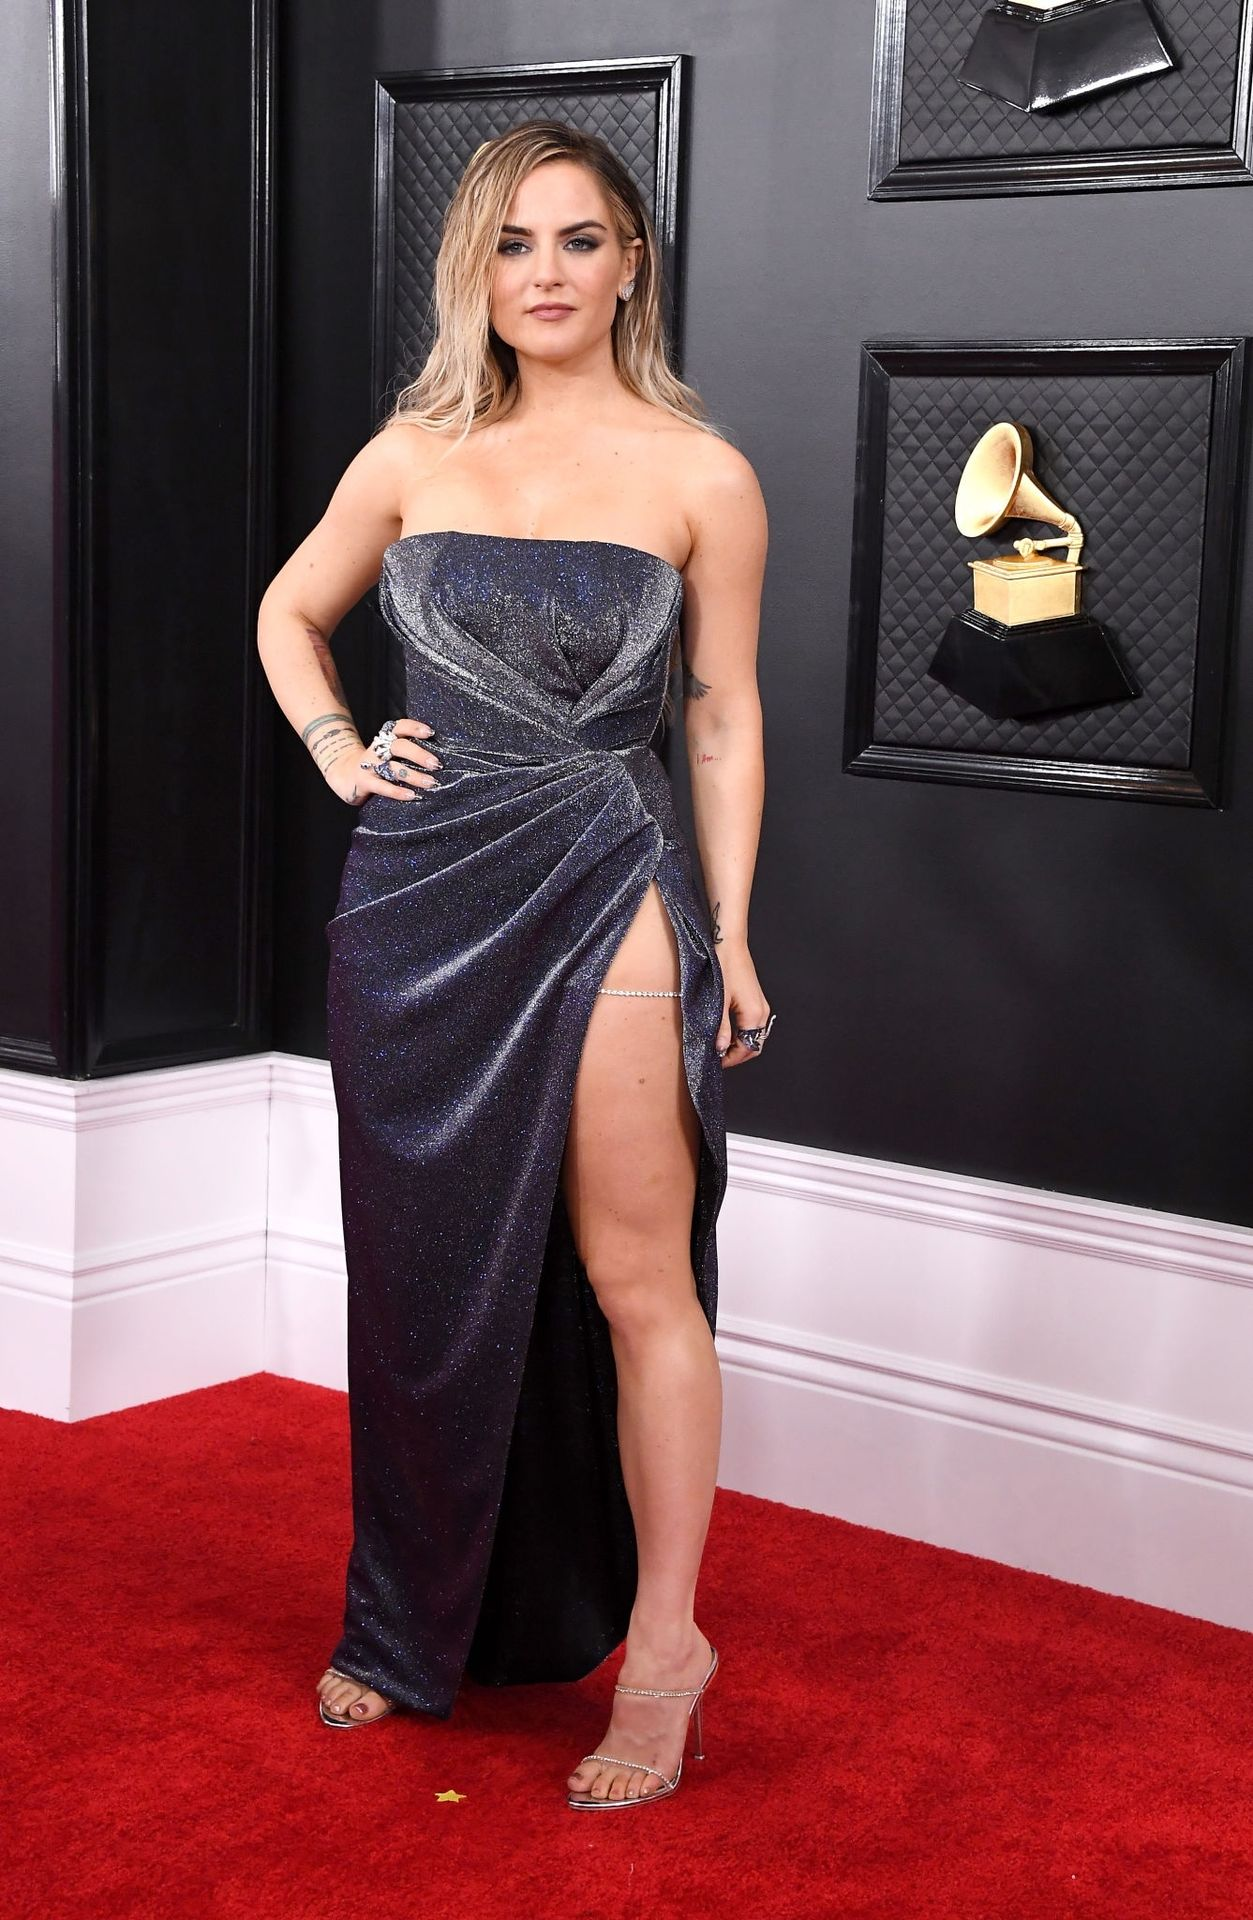 Jojo Shows Her Legs And Cleavage At The 62nd Annual Grammy Awards 0027